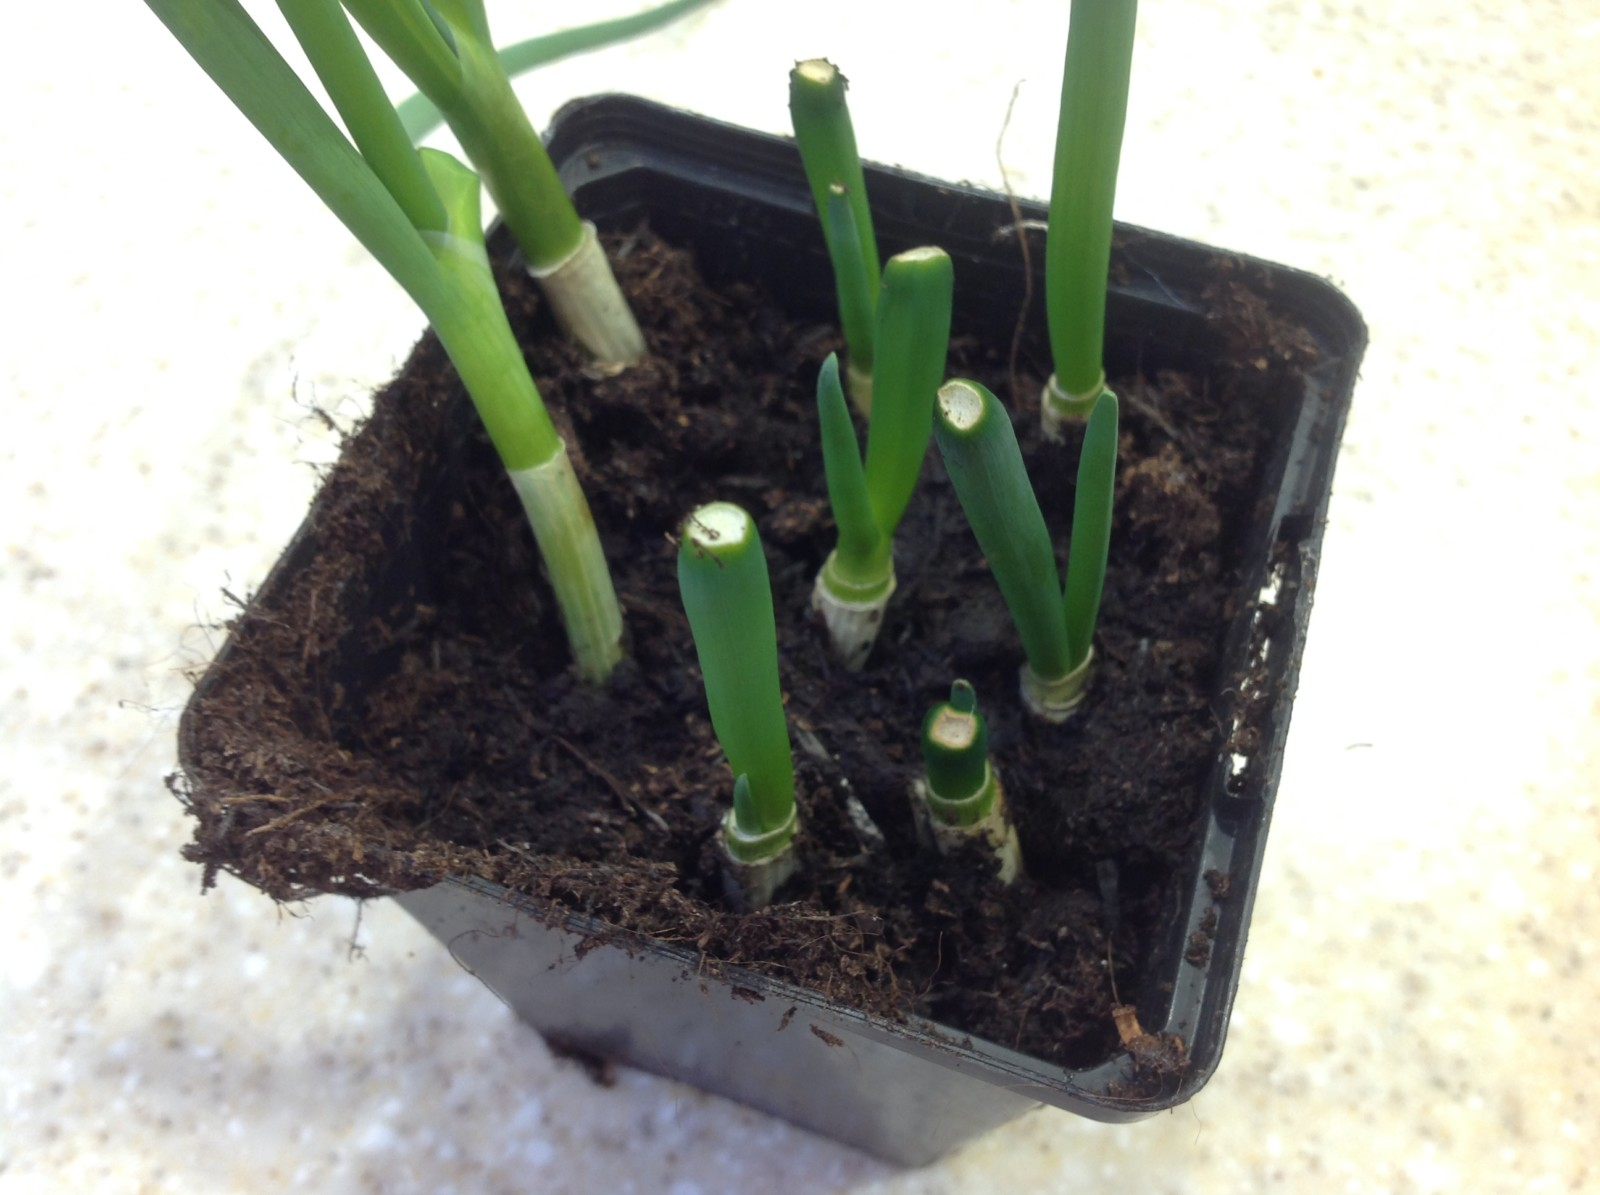 Regrowing spring onions